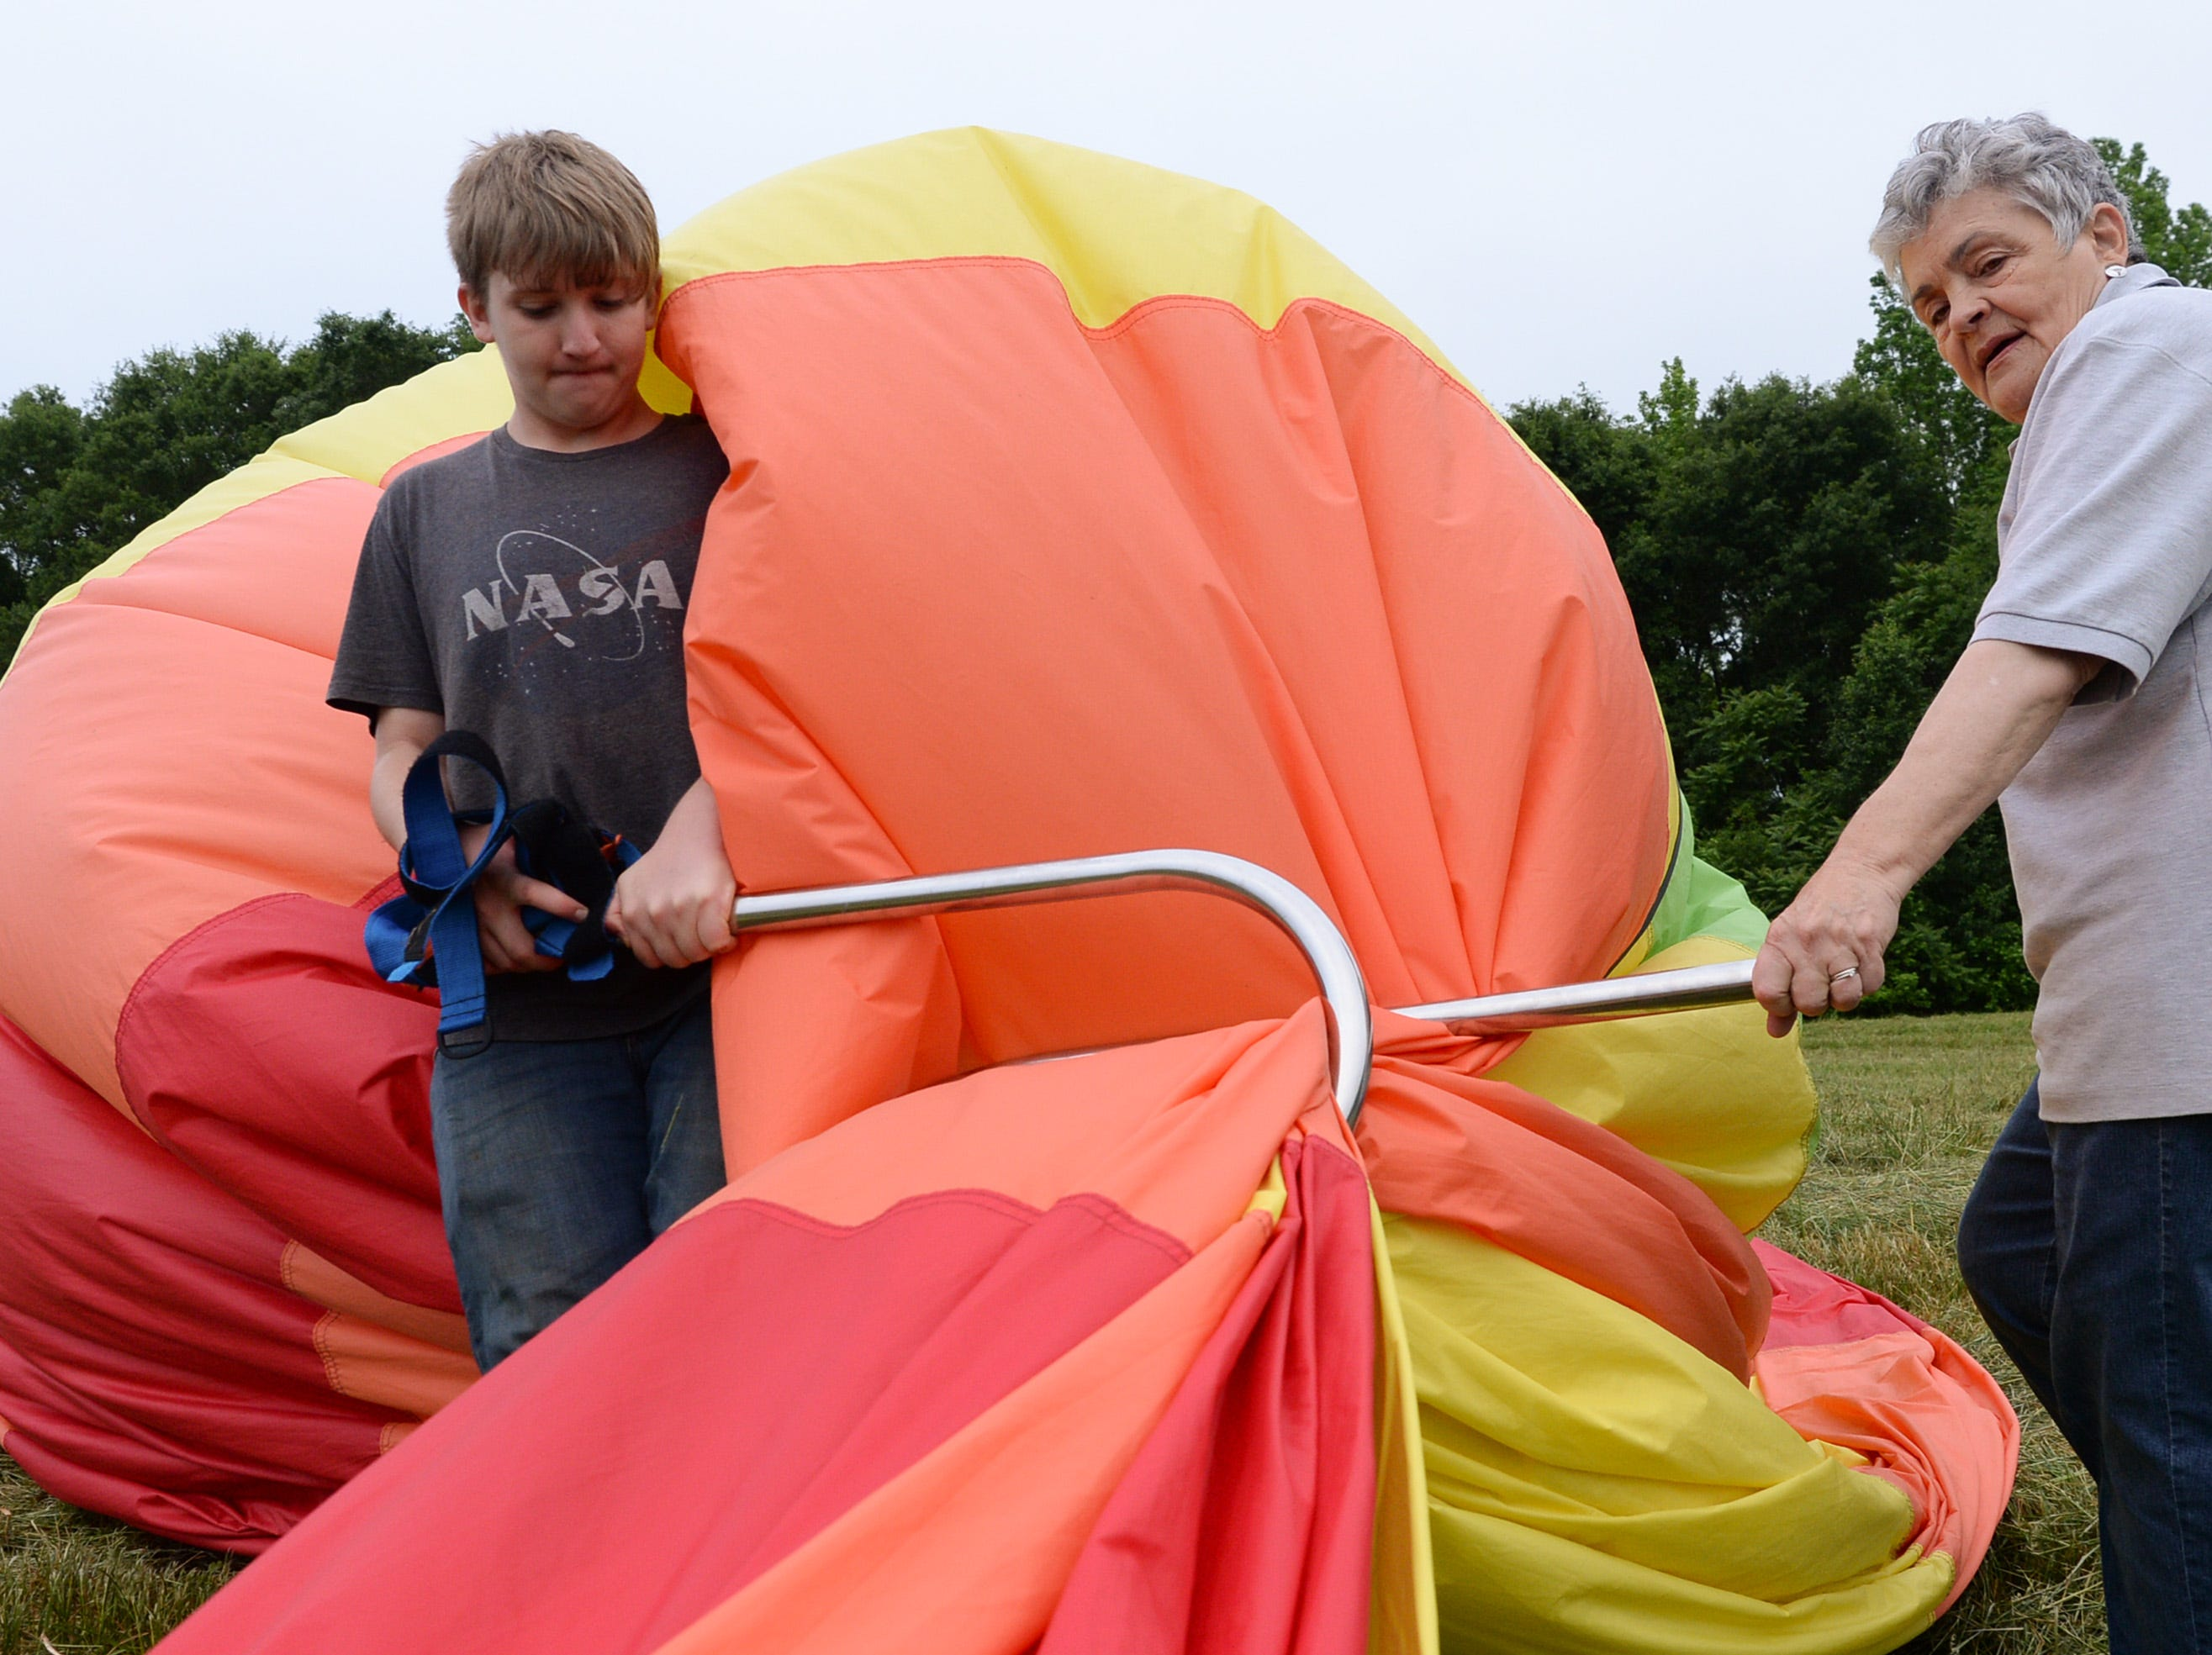 "Sammy Mathis, left, 15, helps Judy Mullinax collect their hot air balloon after flying over Rocky River Plantation for the Cancer Association of Anderson Hot Air Balloon Affair in Anderson Friday. The event fundraiser helps the non-profit with helping cancer patients with financial needs and support, which the group executive director Angela Stringer said had 5,000 contacts. ""This is an opportunity for cancer patients, survivors, and their families and caregivers to come out and have a weekend of just peace, and enjoy the balloons. It's just a way to rise above cancer,"" cancer survivor Stringer said."